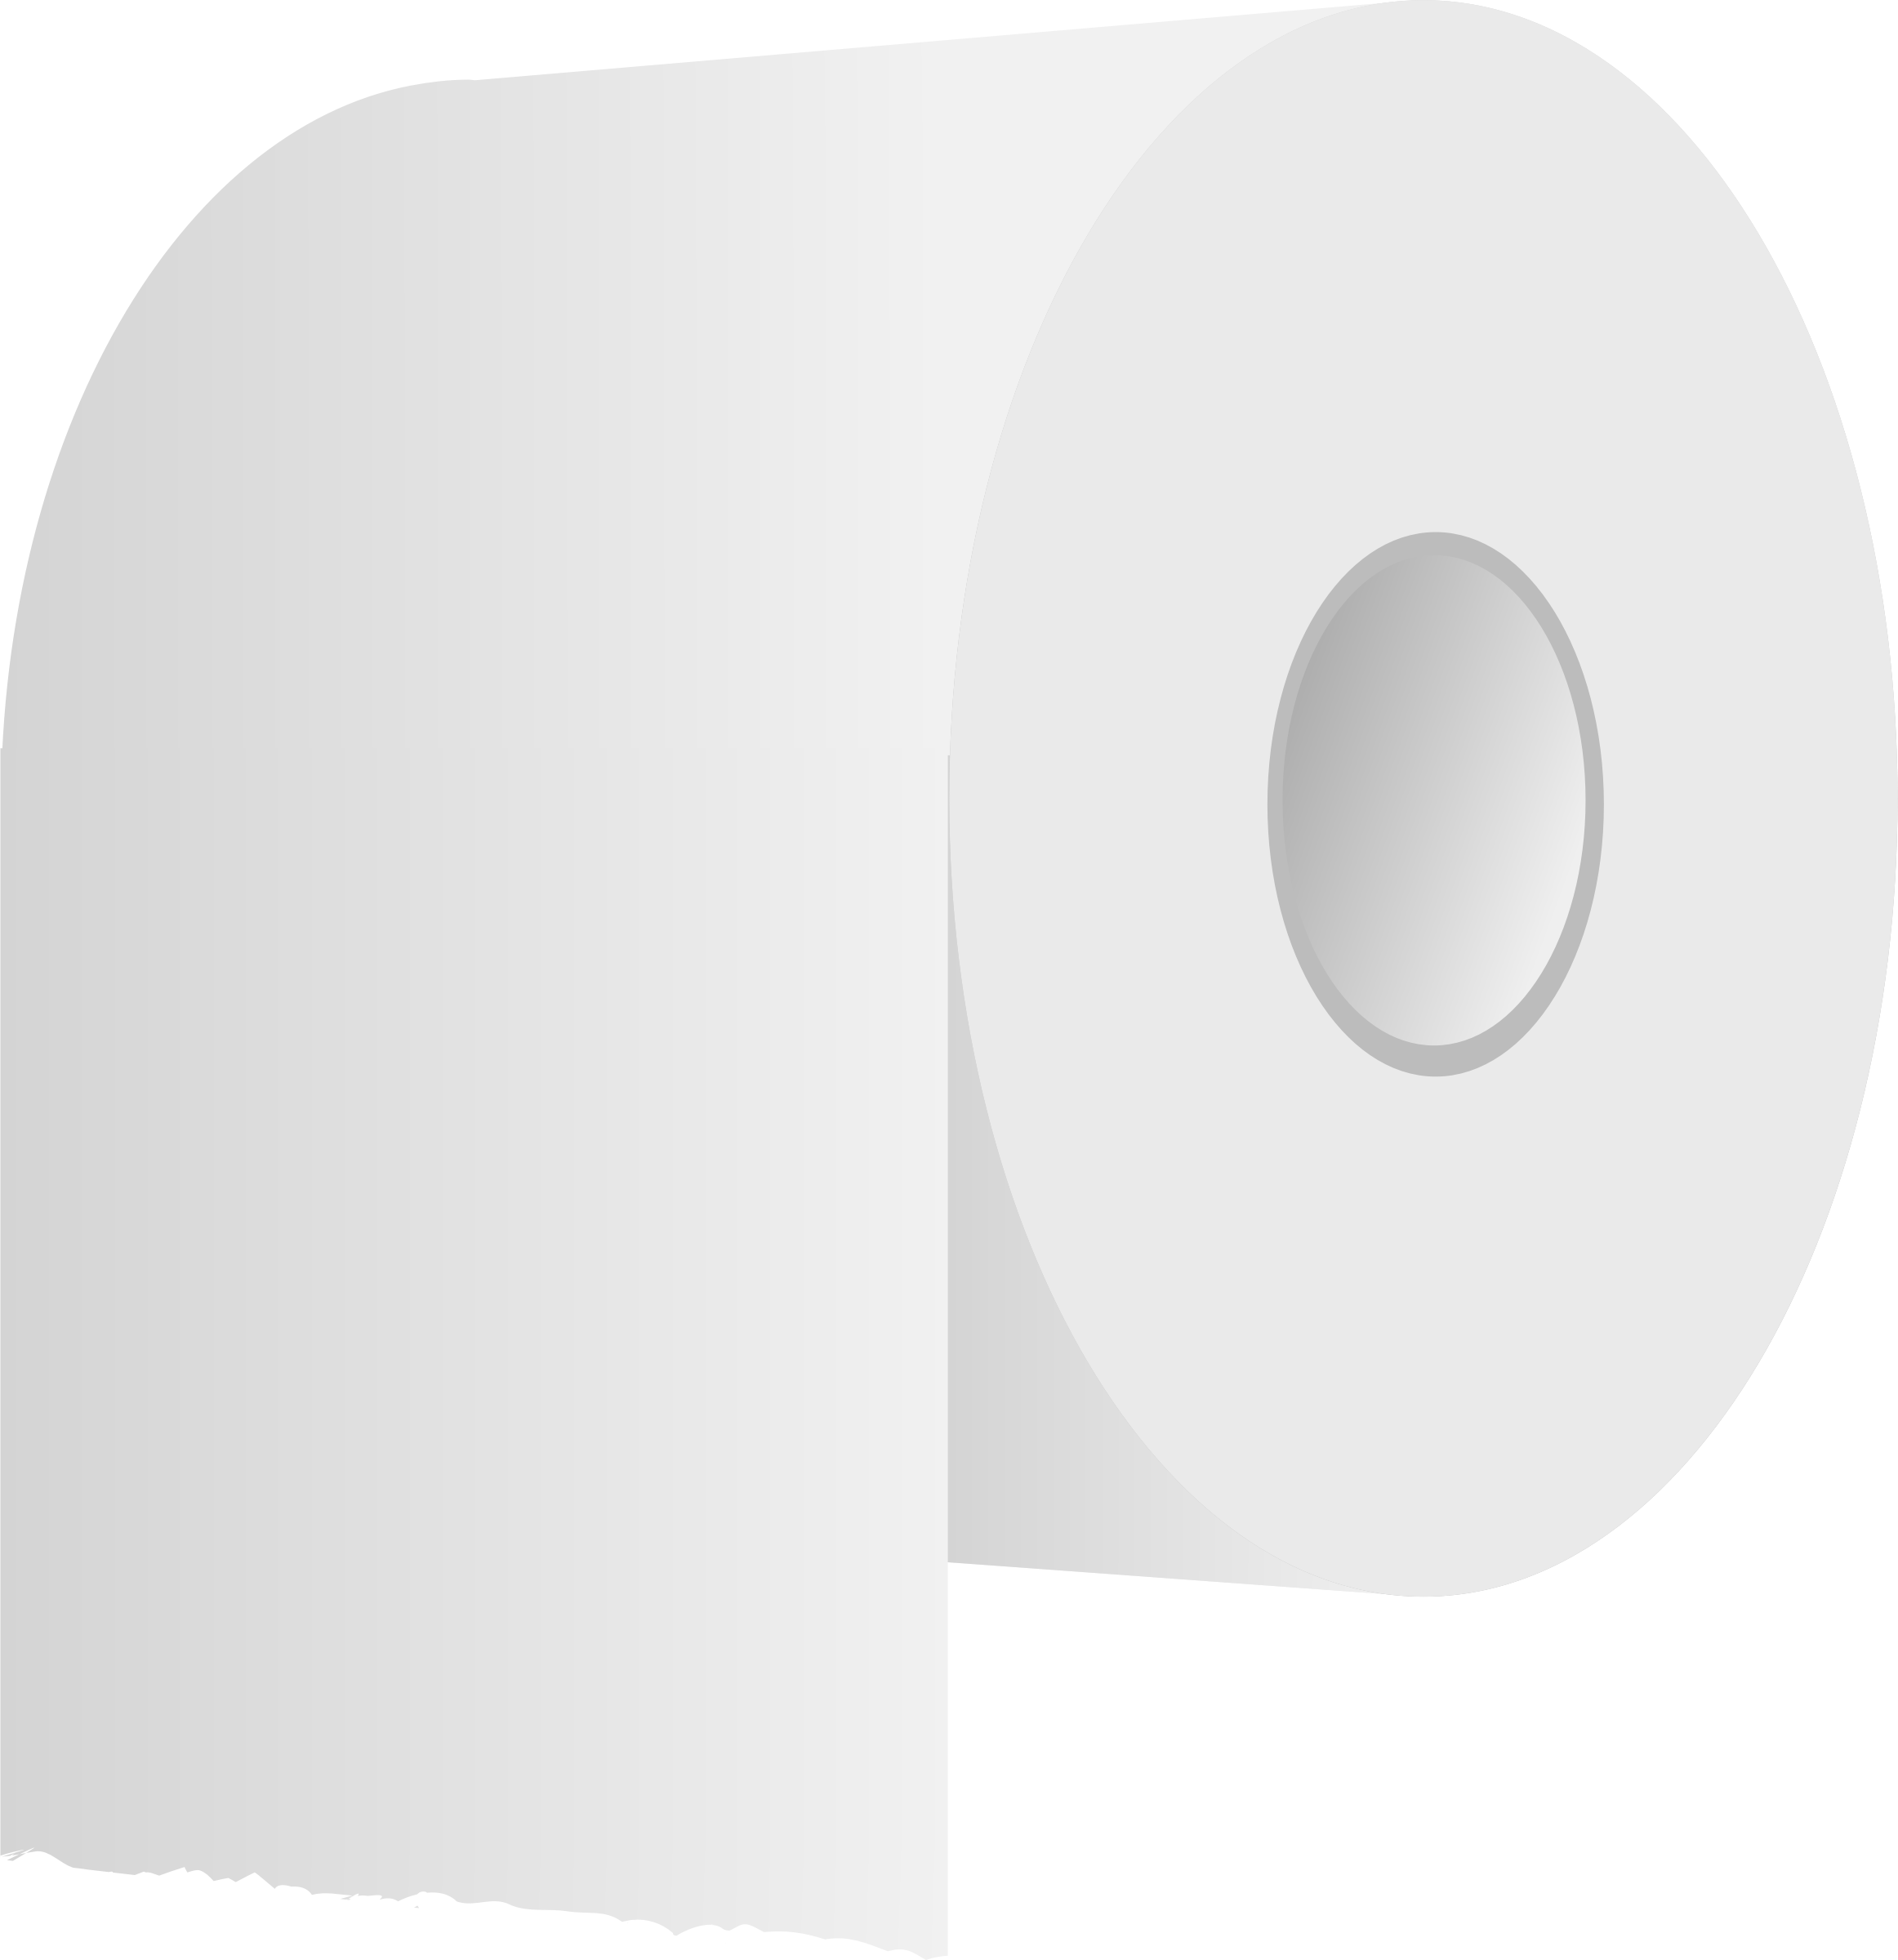 White toilet roll by Firkin